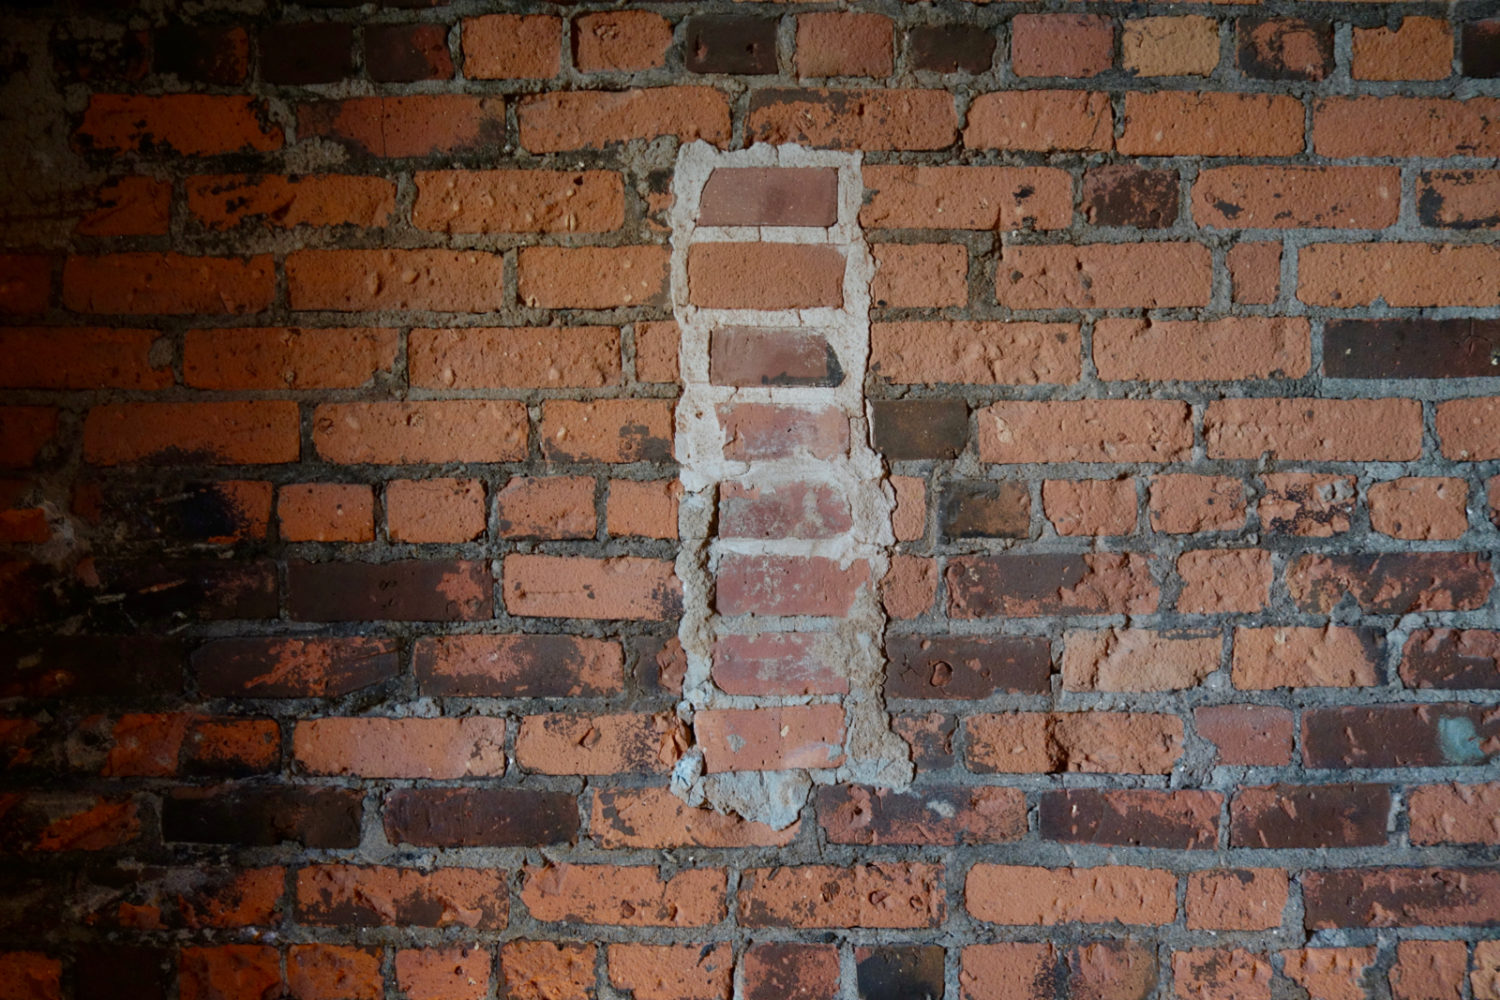 Brick wall at Trata in Culver Road Armory